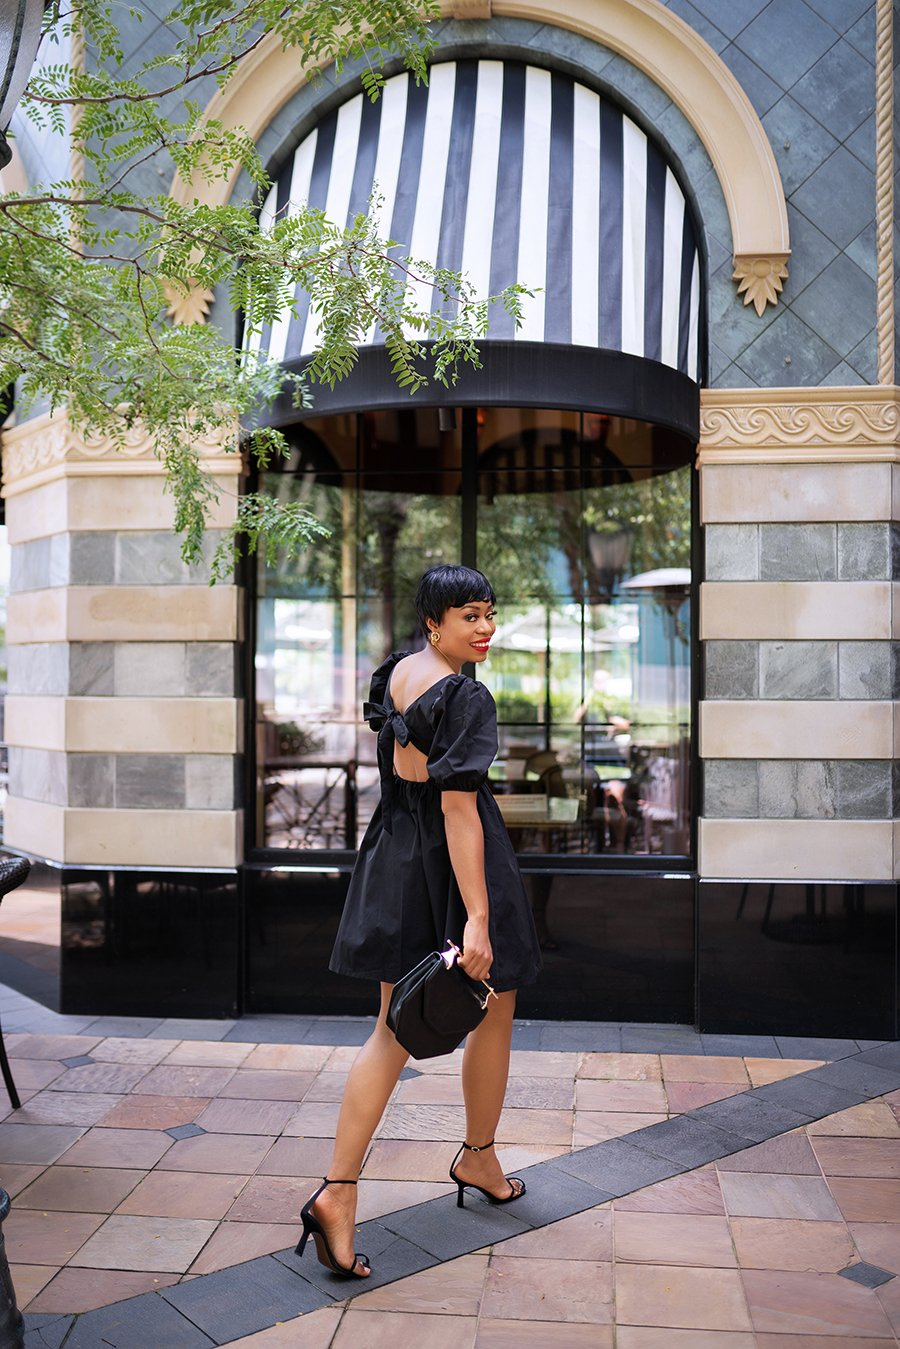 stella-adewunmi-of-jadore-fashion-blog-shares-HMxme-Little-black-dress-perfect-end-of-summer-dress